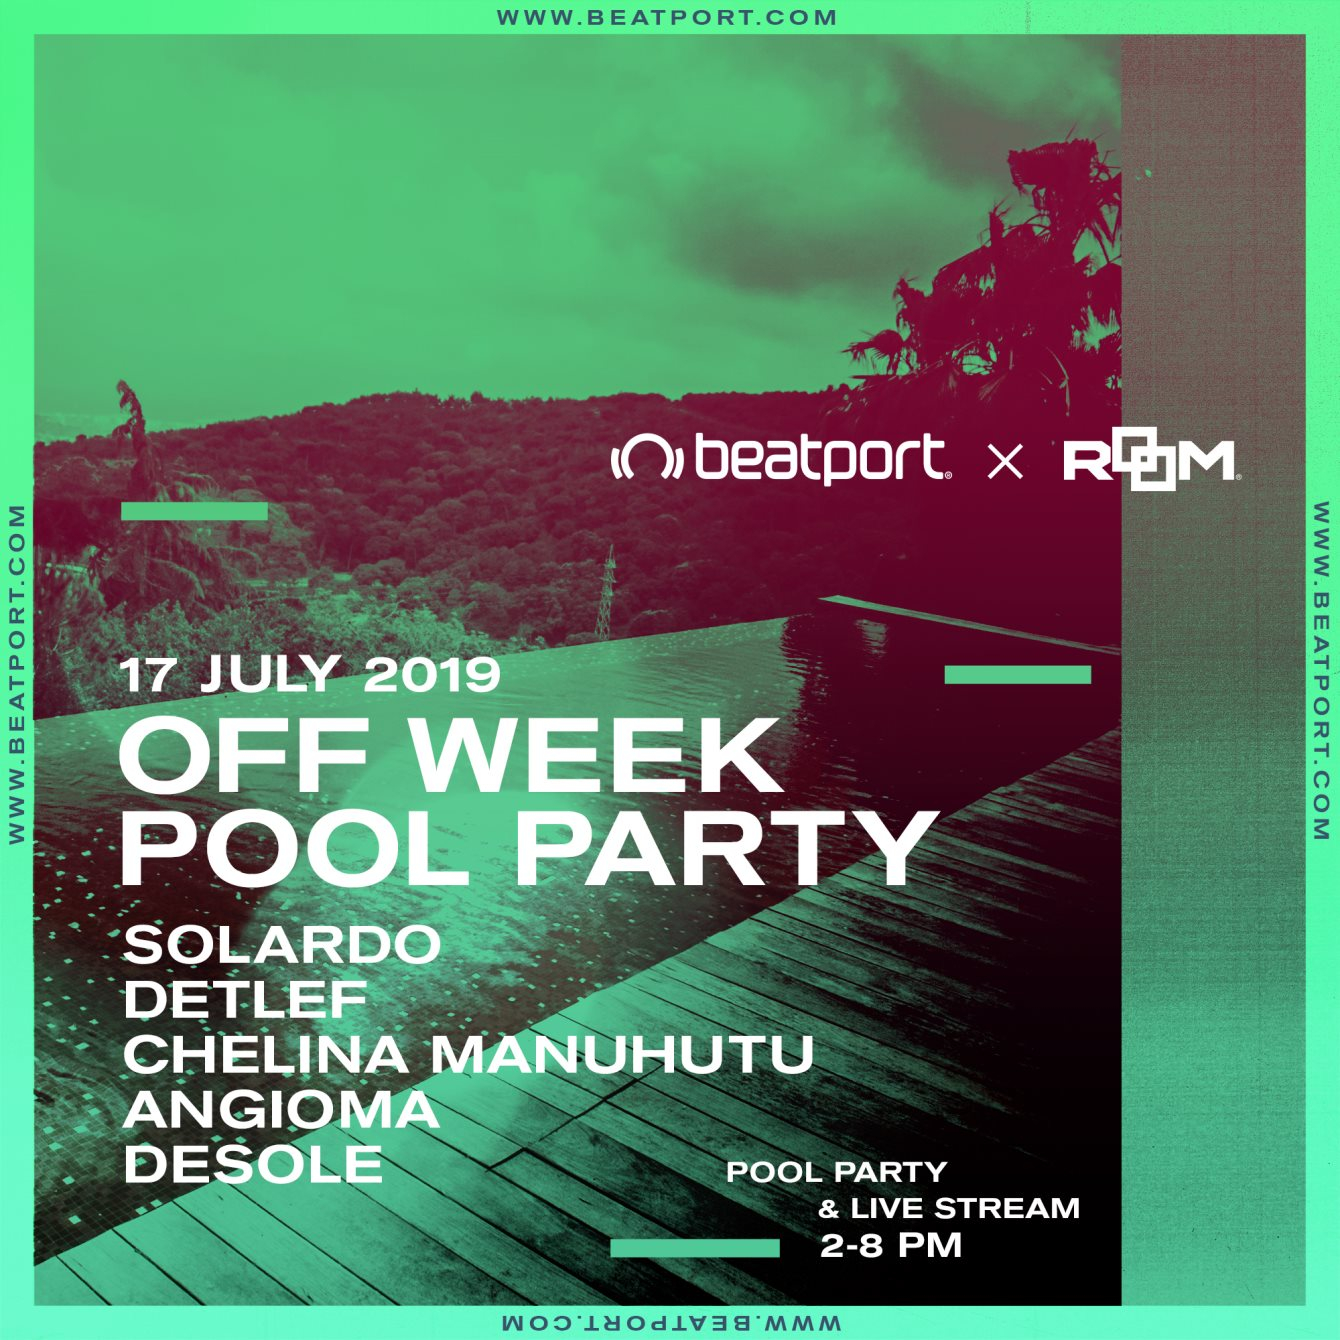 Pool Party Room Lab X Beatport Off Week - Flyer front